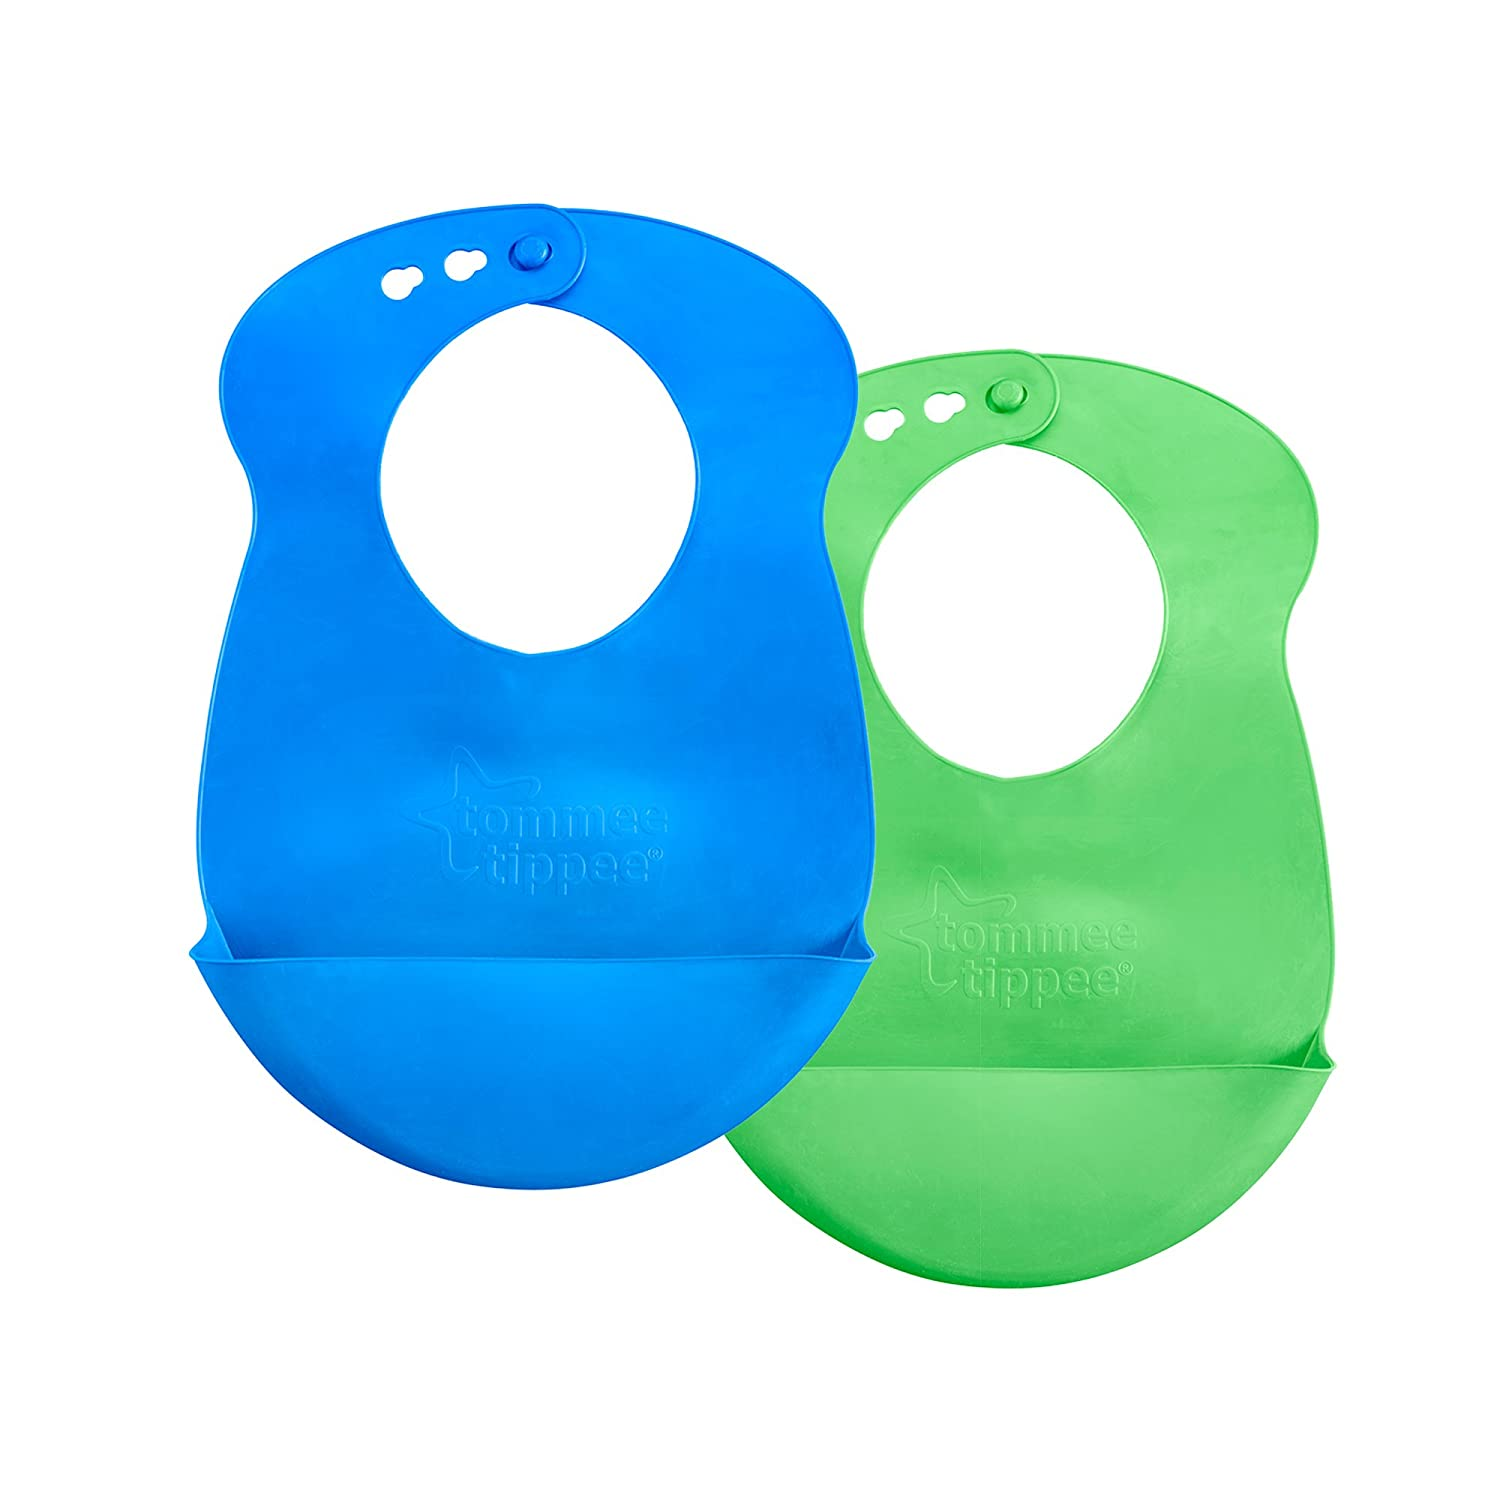 Tommee Tippee Easi Roll Drip Catcher Baby Bib, 7+ months - Blue and Green, 2 Count 563516